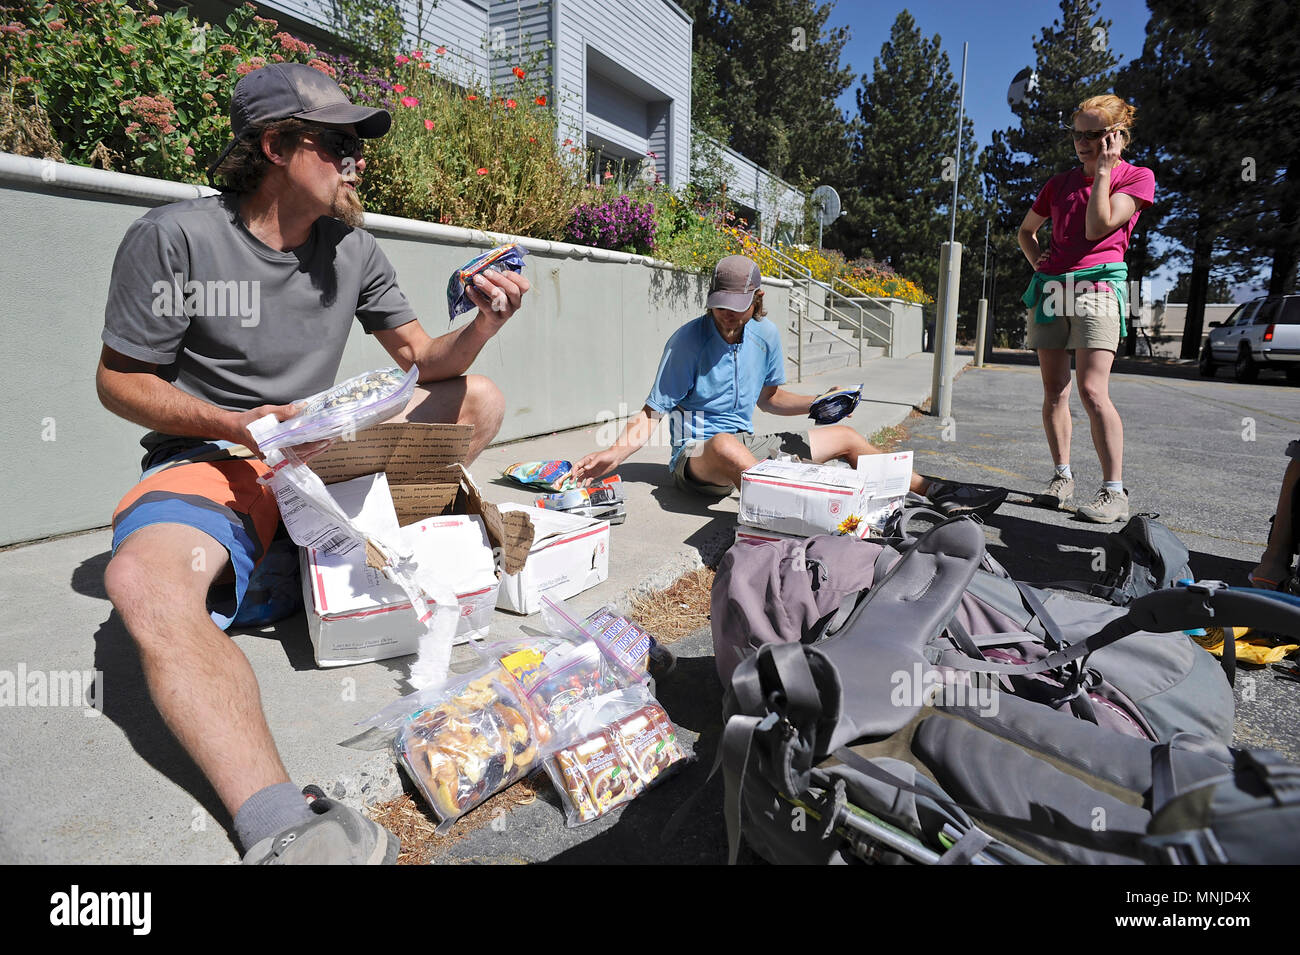 Backpackers resupply before long trail in town of Mammoth Lakes on trek of Sierra High Route in California, USA - Stock Image